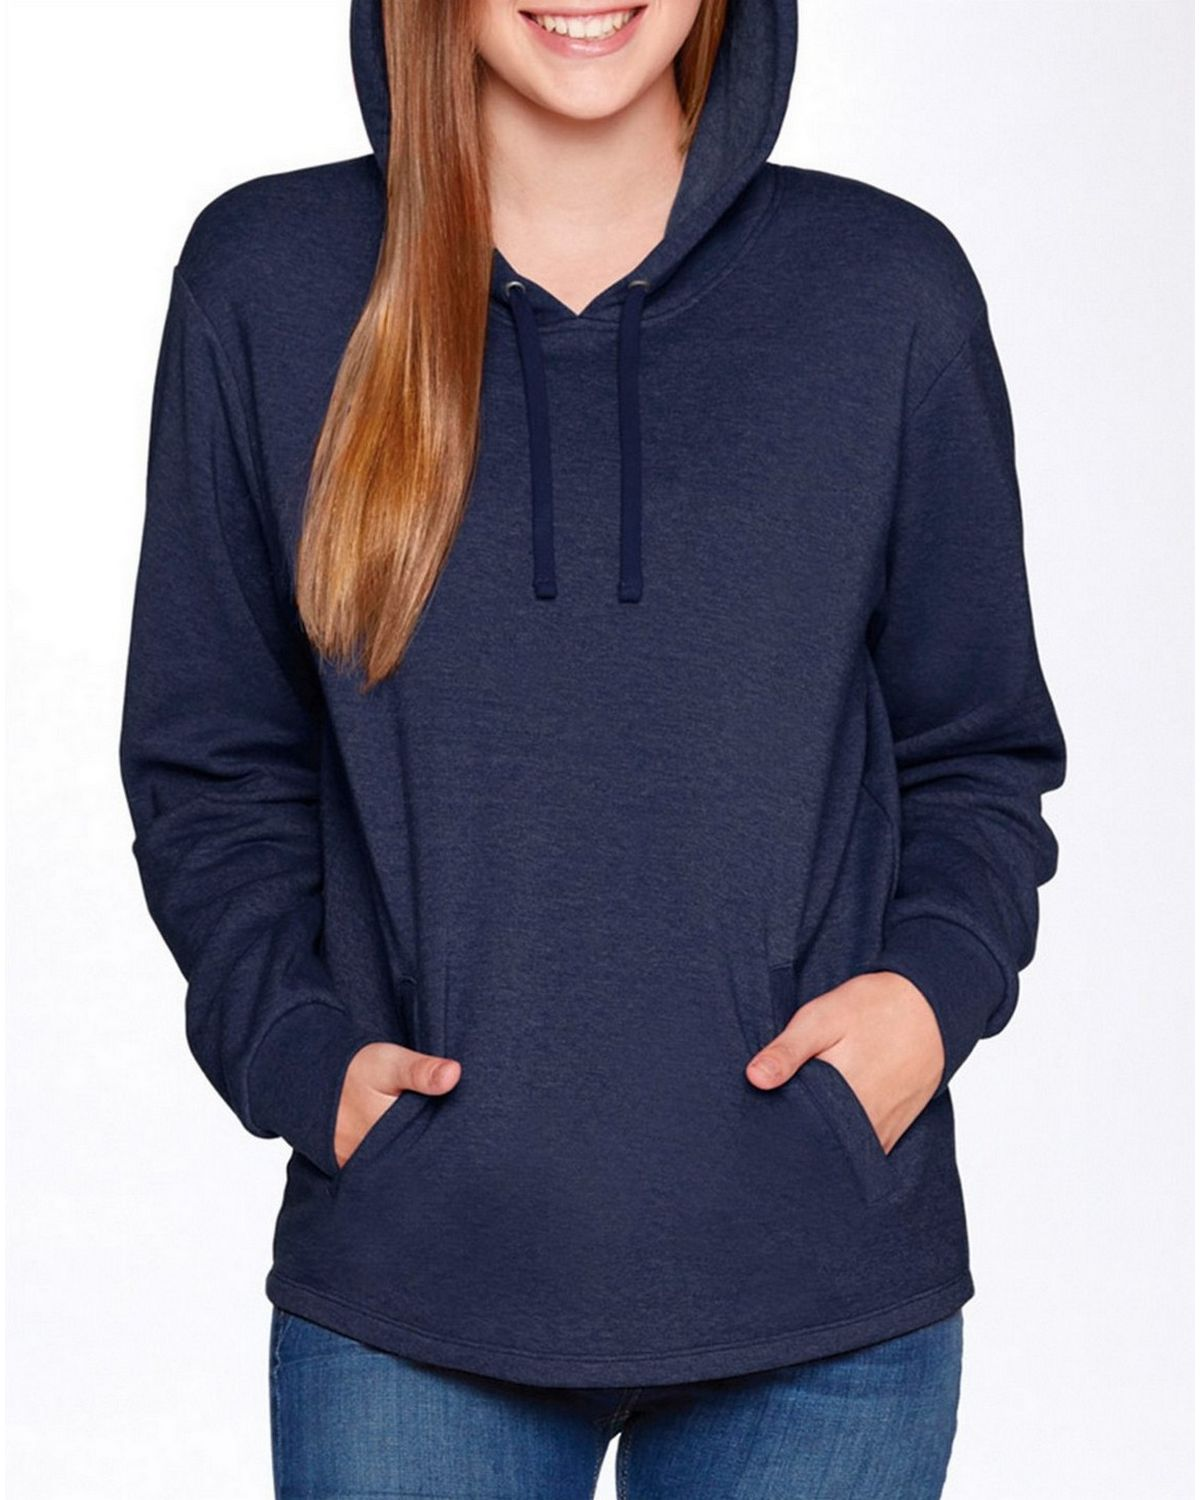 Next Level 9300 PCH Pullover Hoodie - Midnight Navy - L 9300